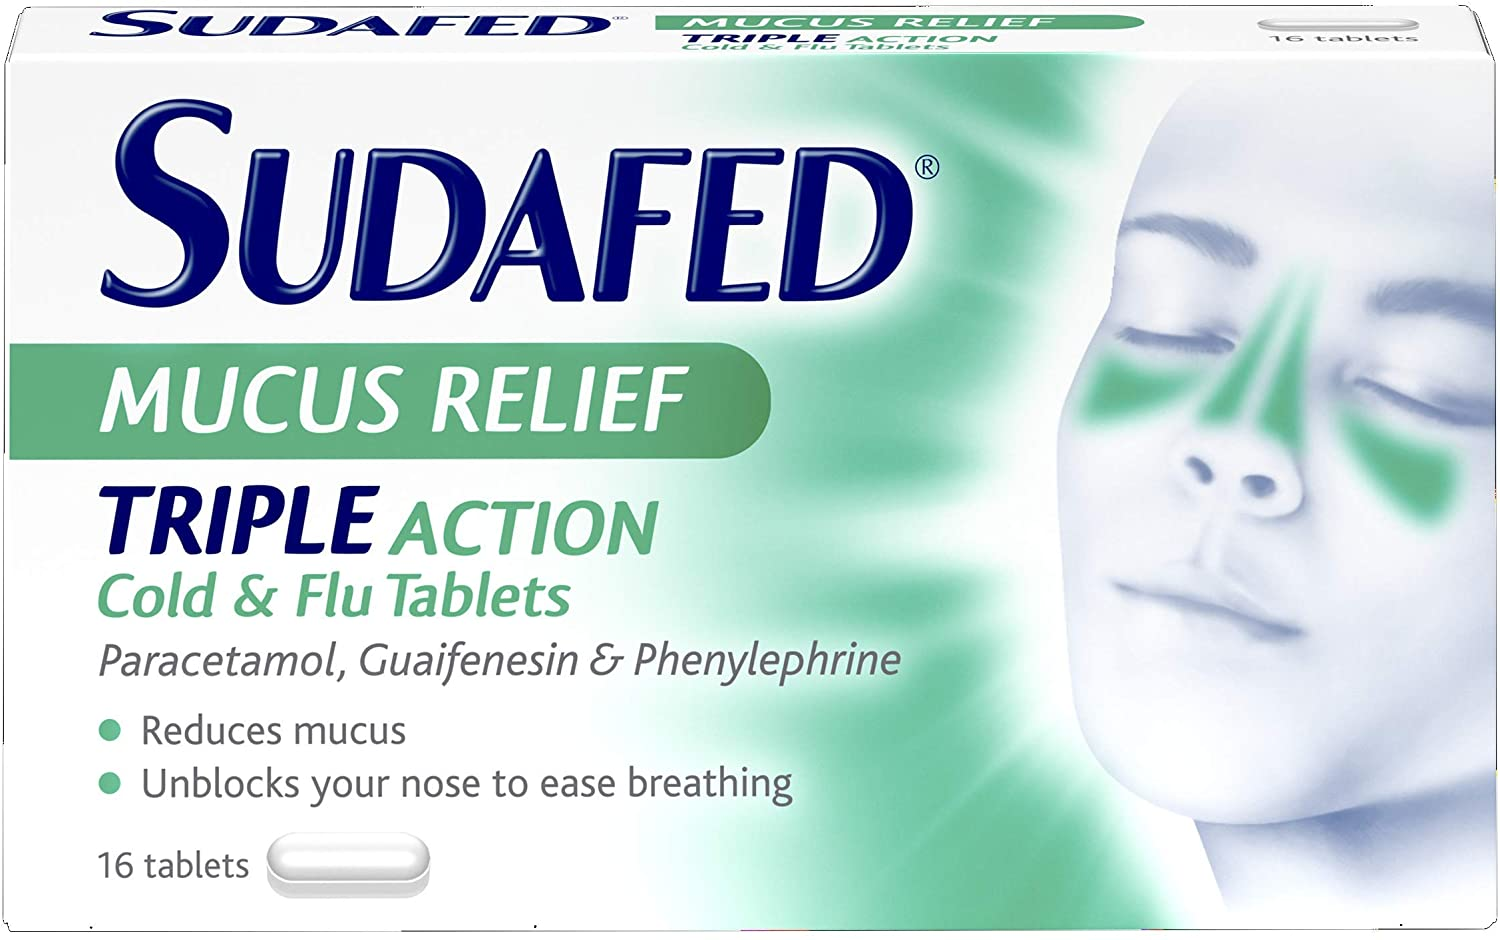 SUDAFED(TRIPLE ACTION) MUCUS